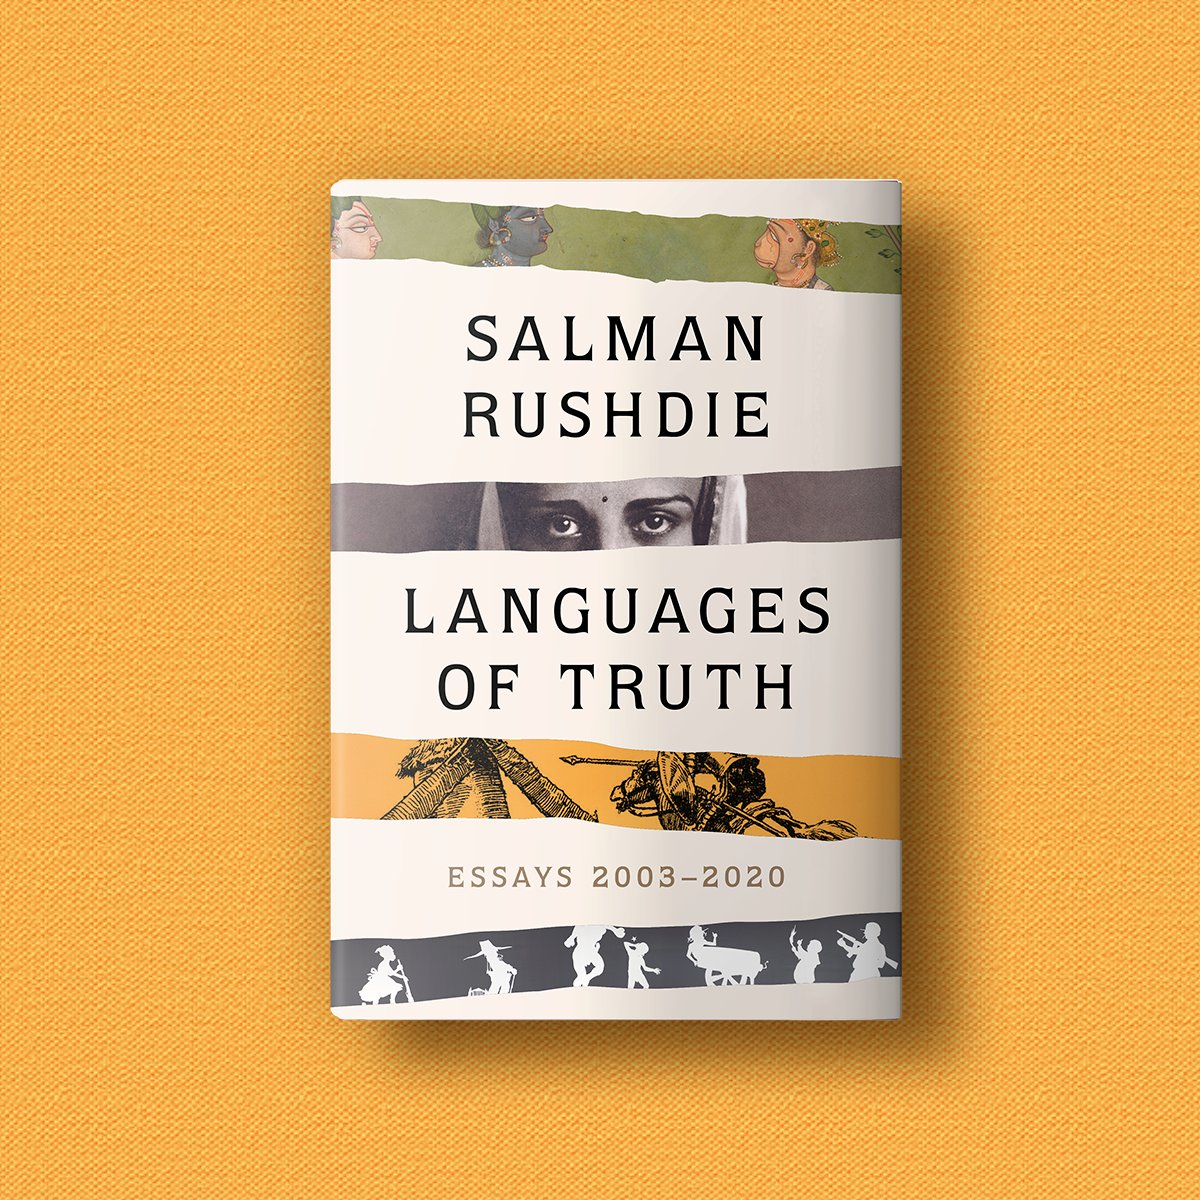 This is the cover for my book of essays Languages of Truth which Random House will publish on May 25th 2021, a collection including many texts never previously in print. Preorder here: https://t.co/42iMrPsO66 https://t.co/MAnOXMYwms